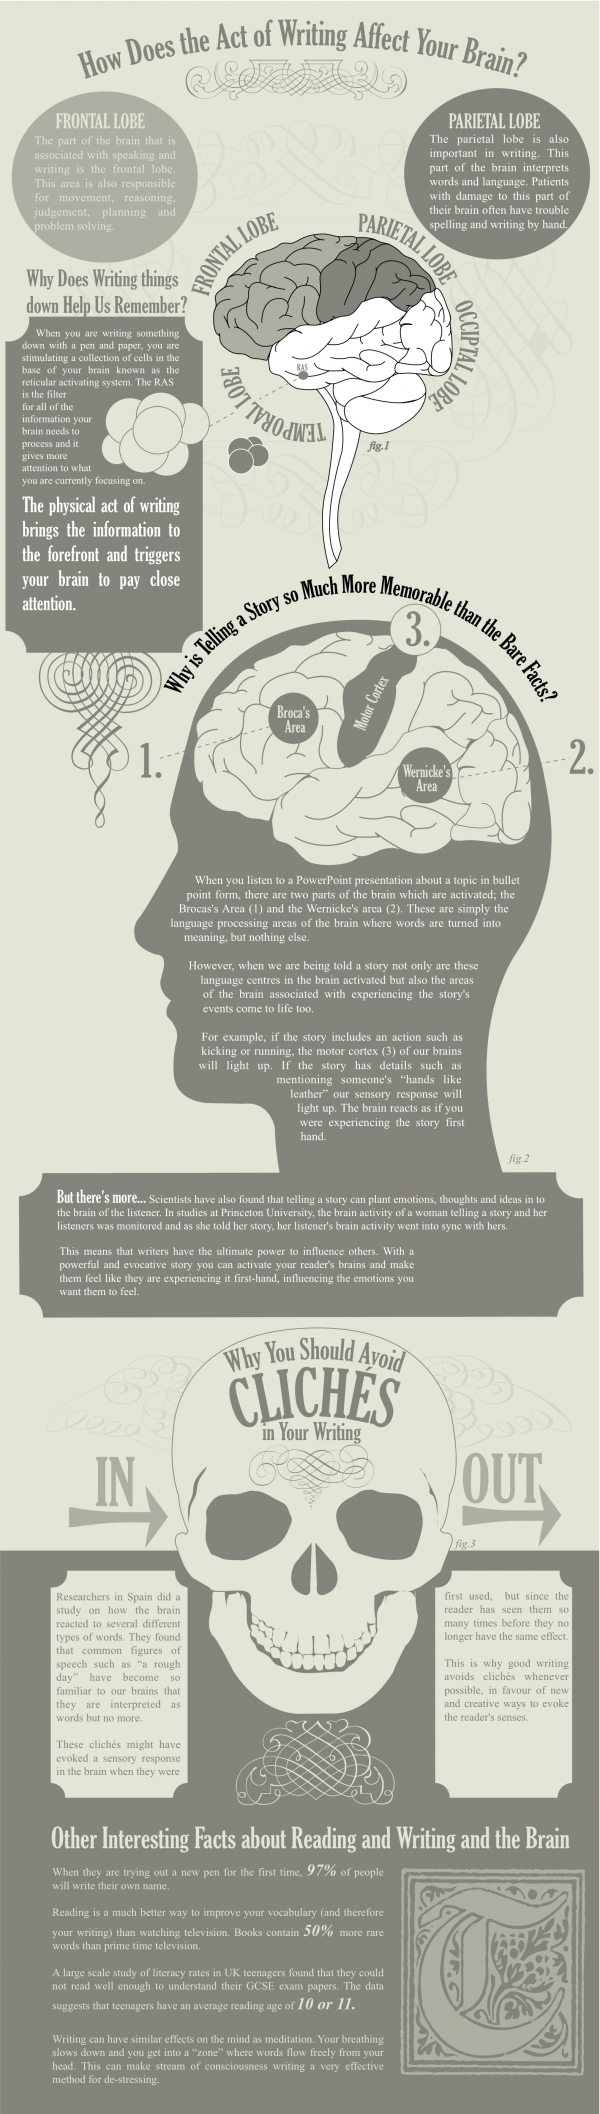 Amazing Facts about Writing and the Brain